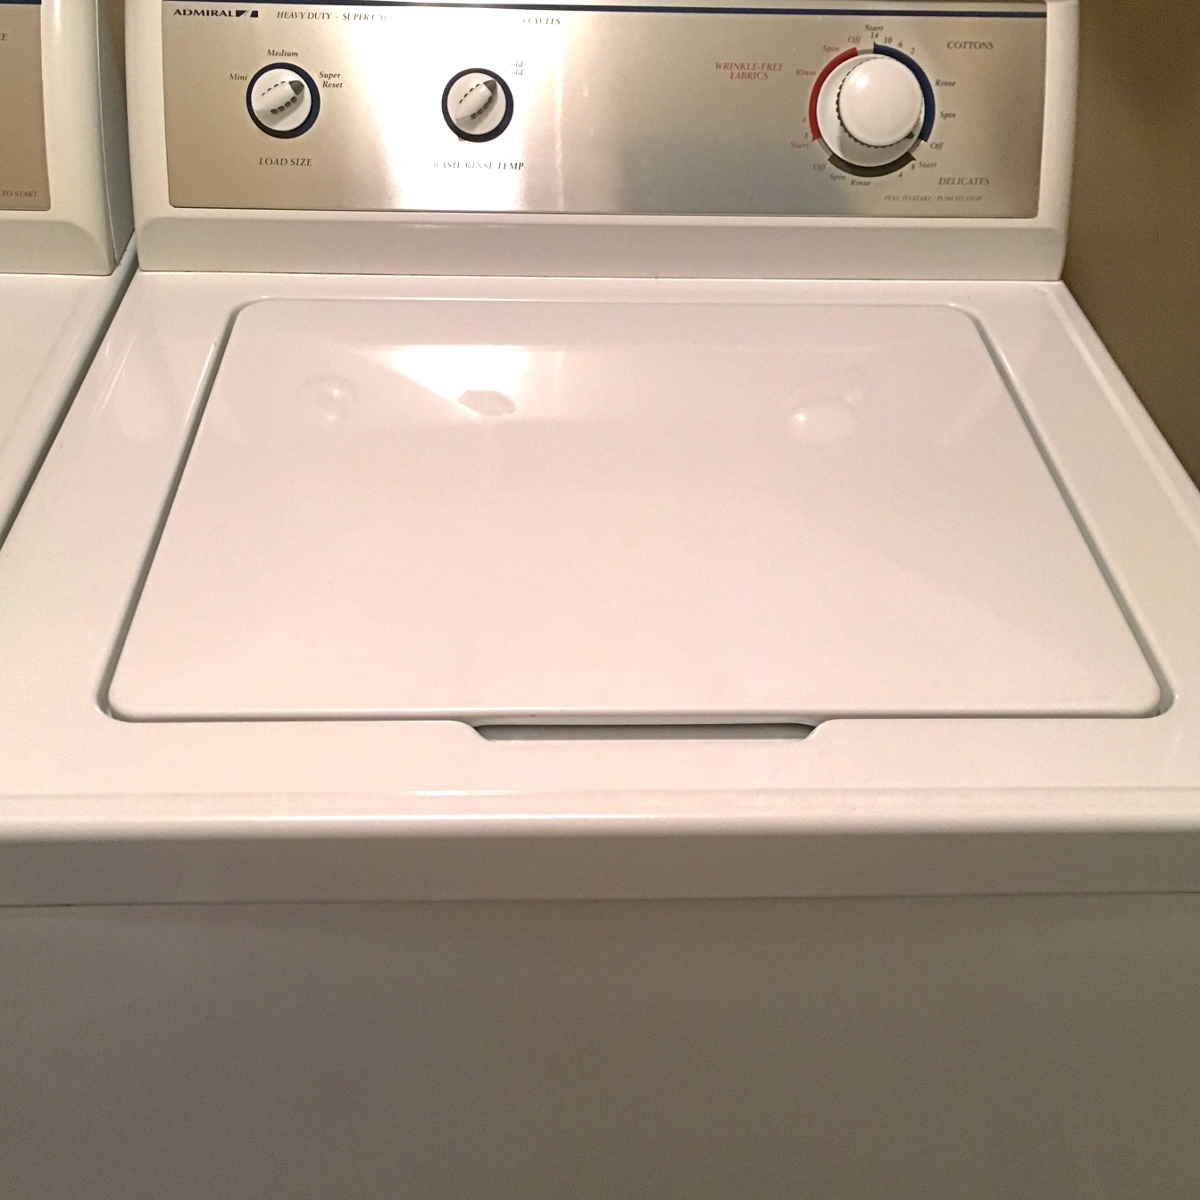 Ebay Apartment For Rent: How To Sell Appliances On Craigslist